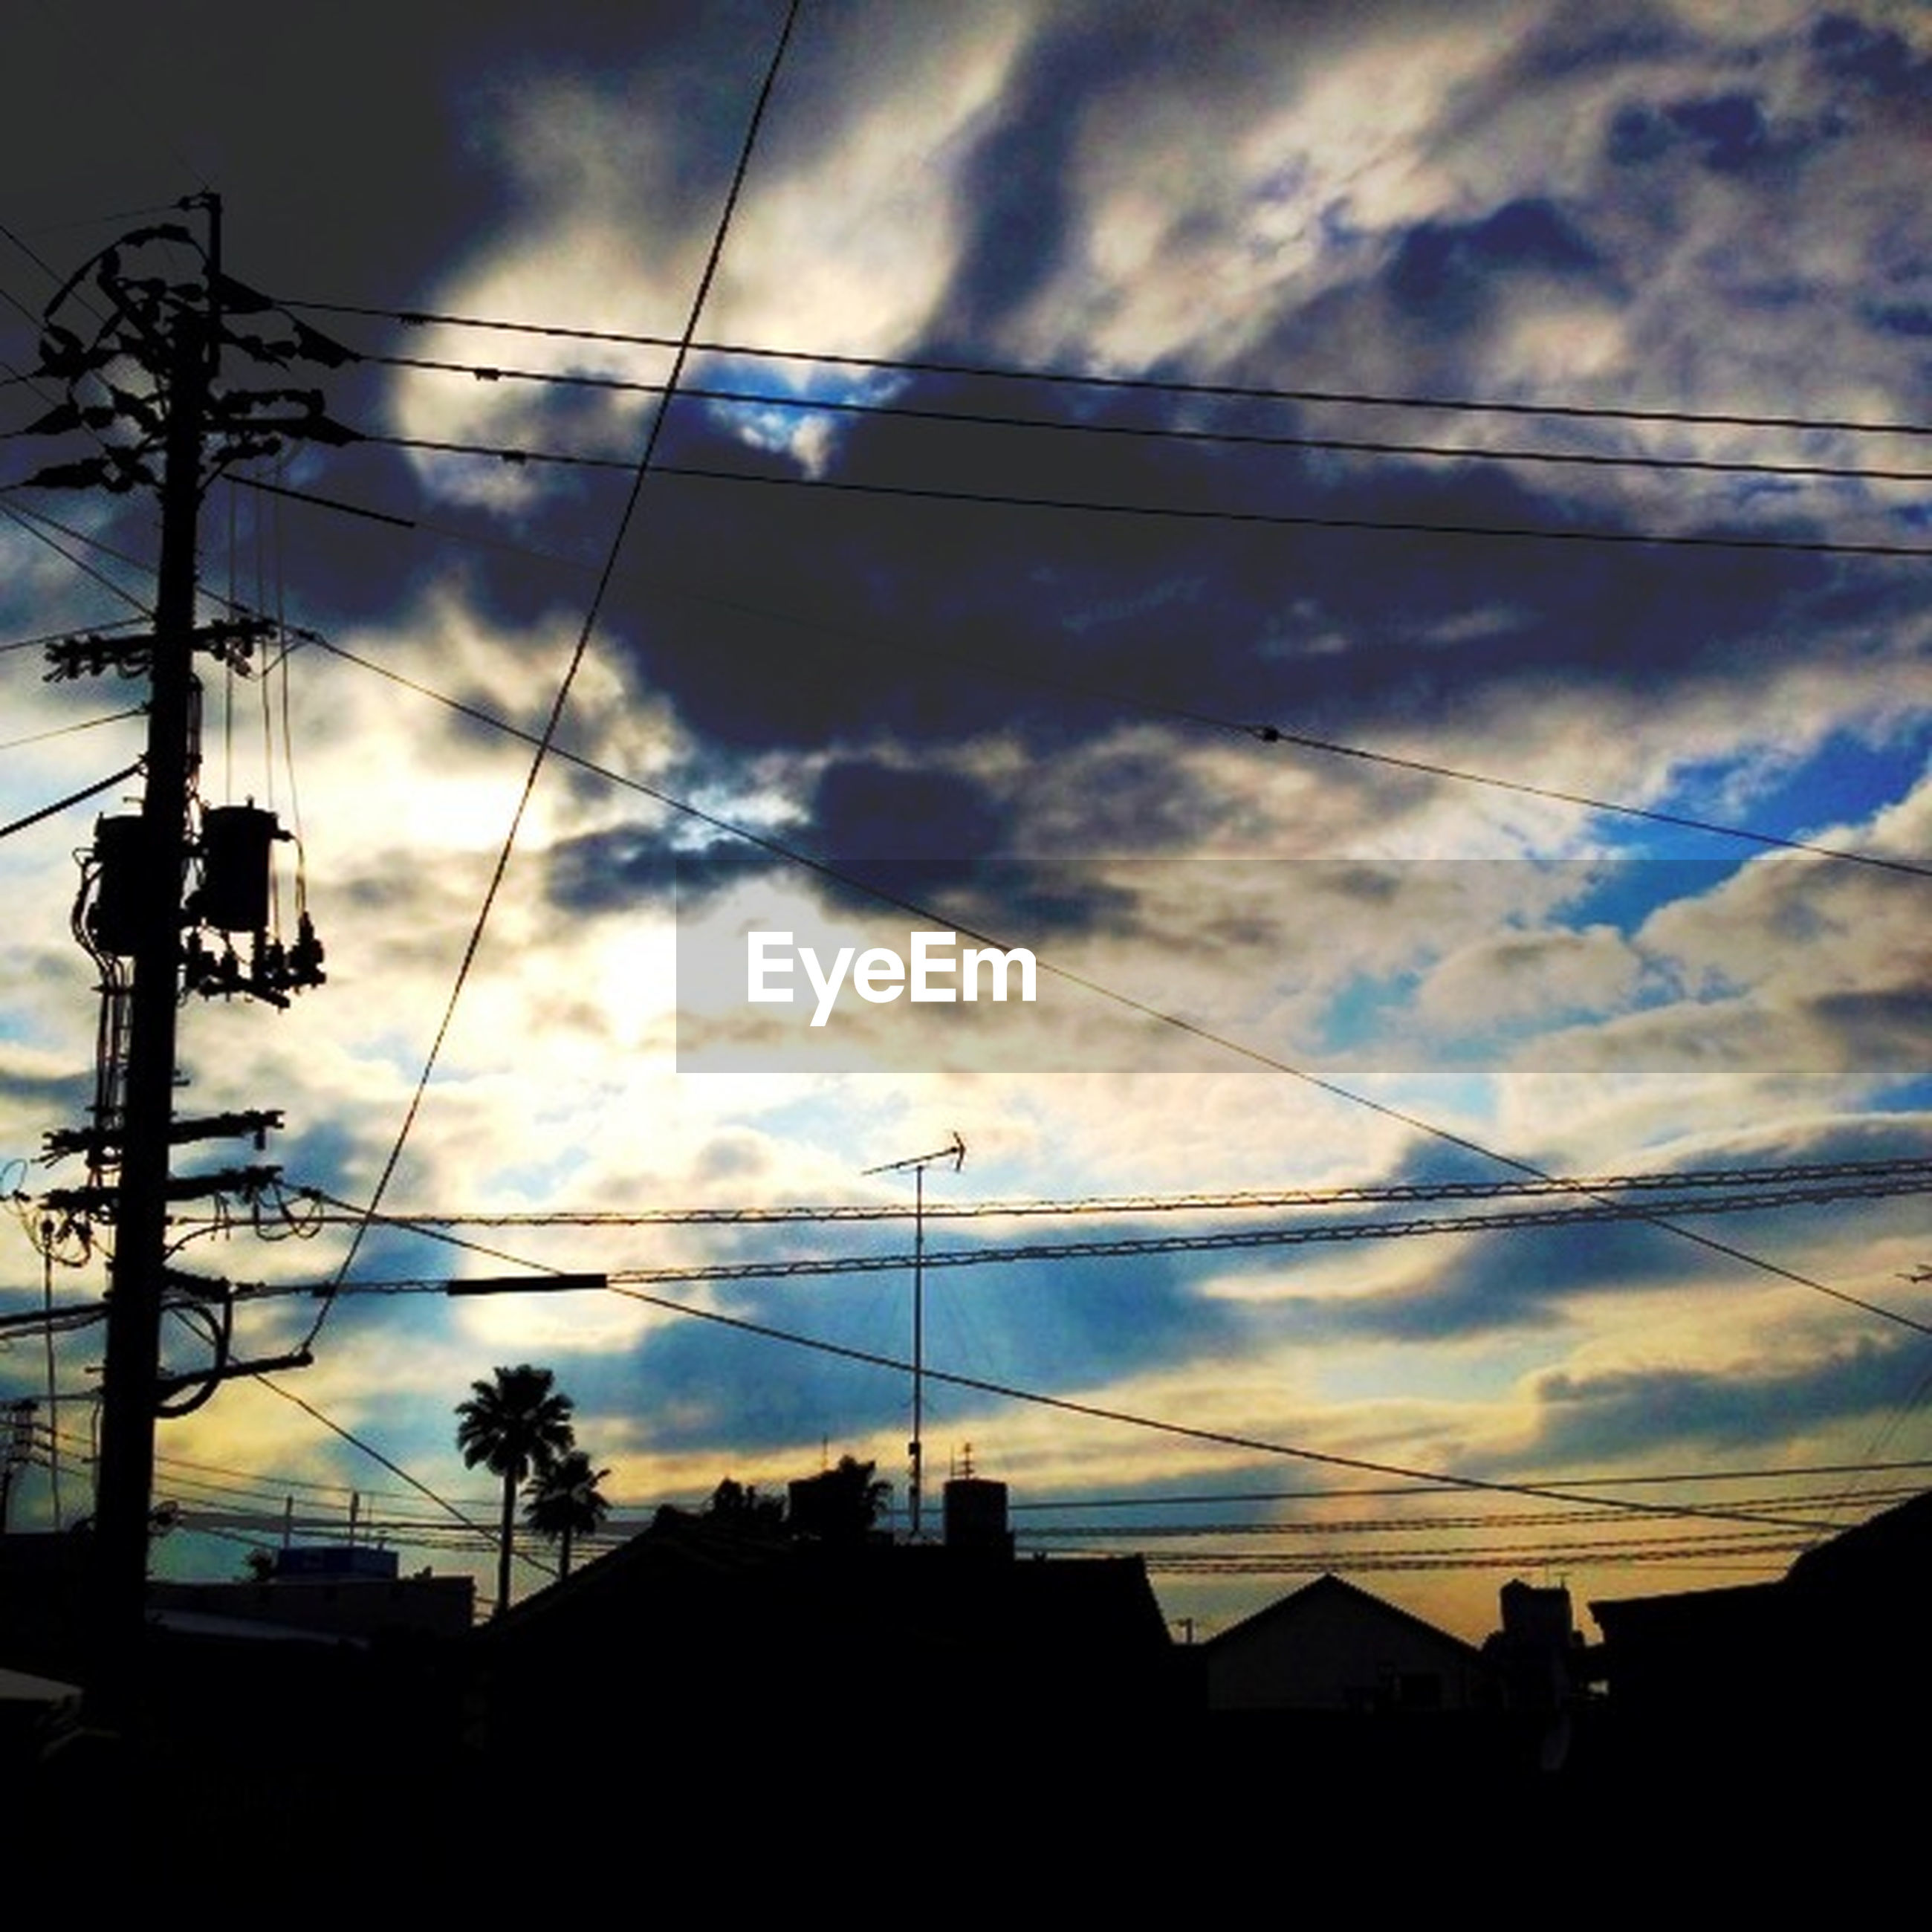 power line, sky, electricity pylon, cable, building exterior, electricity, low angle view, silhouette, power supply, architecture, cloud - sky, built structure, sunset, cloudy, power cable, connection, cloud, house, residential structure, residential building